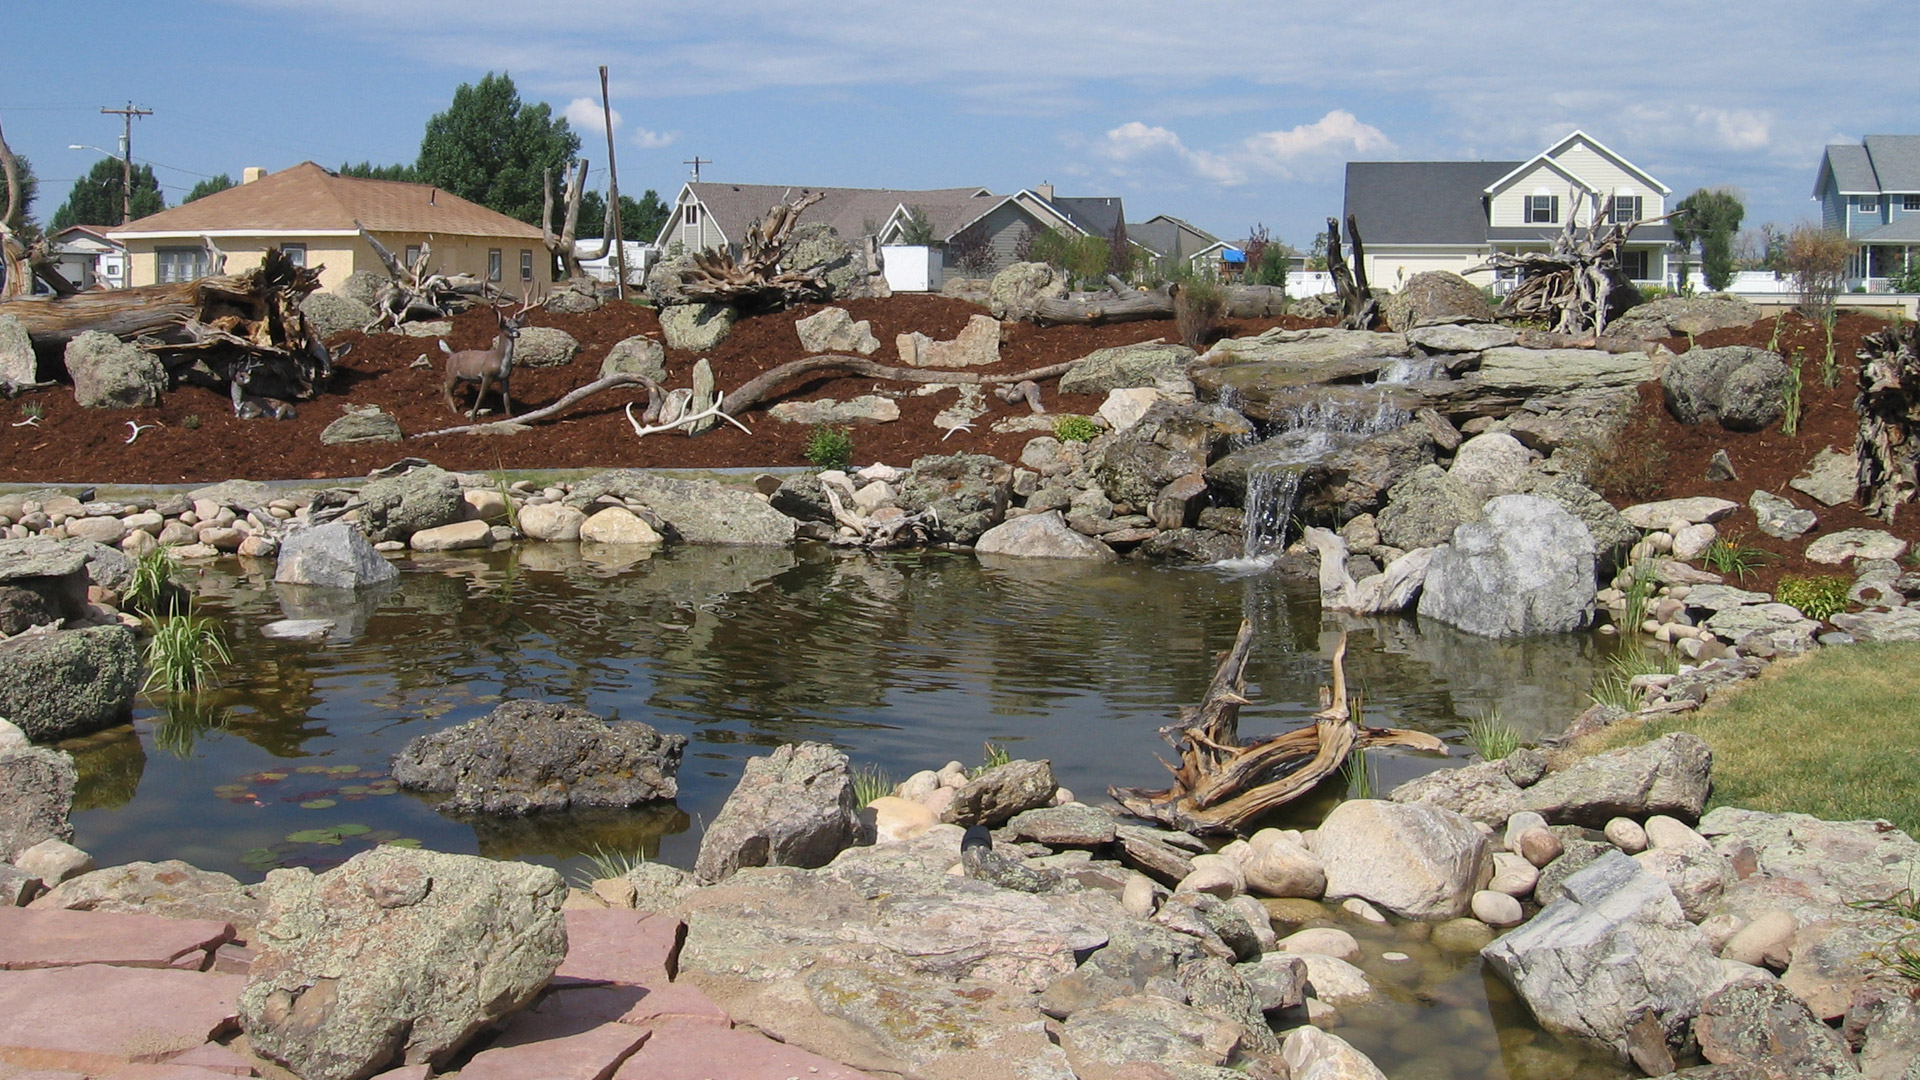 New pond, waterfall and landscaping constructed at a home in Loveland, CO.